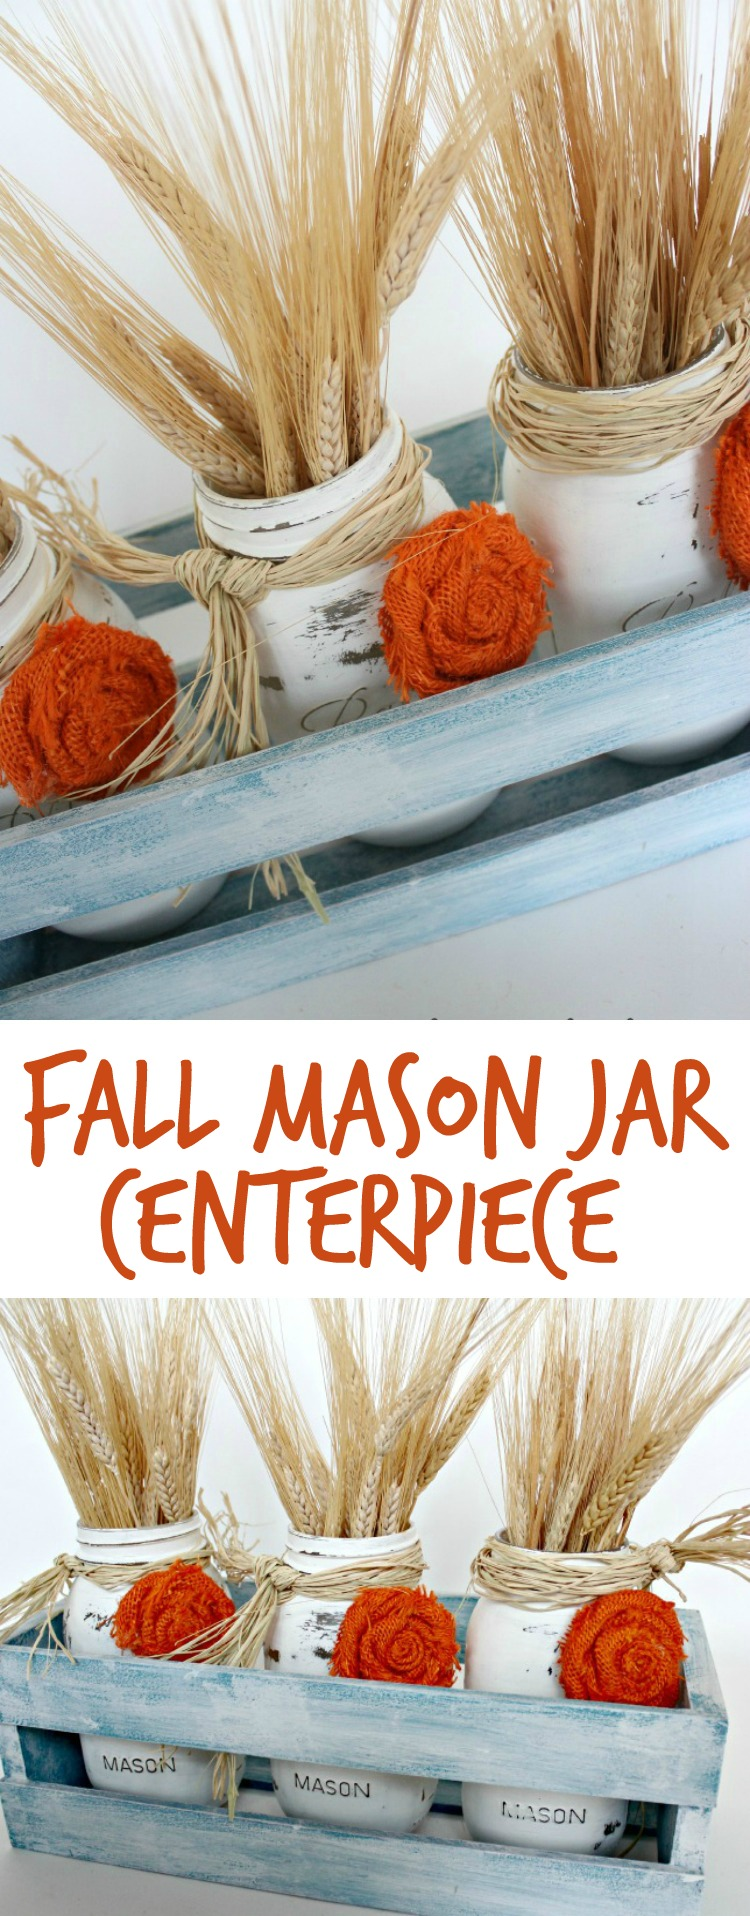 25 Easy Fall DIY Projects: Easy Fall Mason Jar Centerpieces by Oh My! Creative